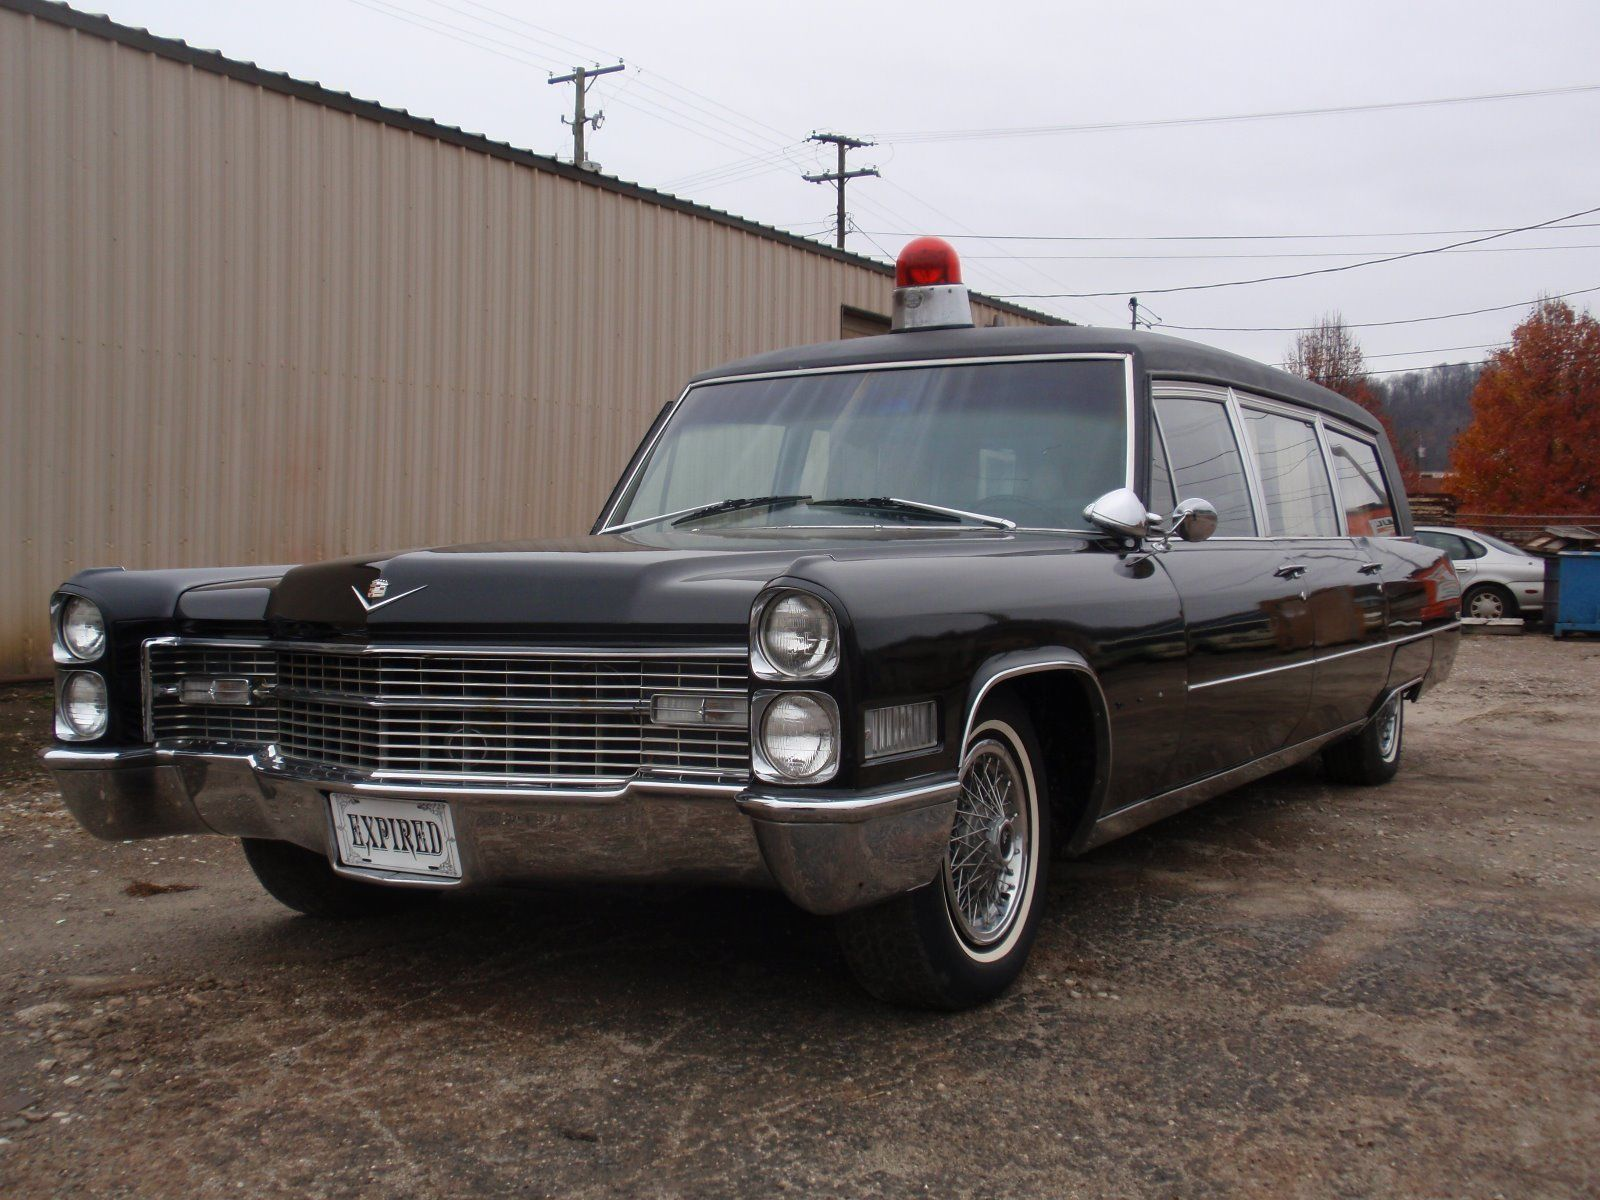 1966 Cadillac Fleetwood M & M HEARSE/AMBULANCE for sale